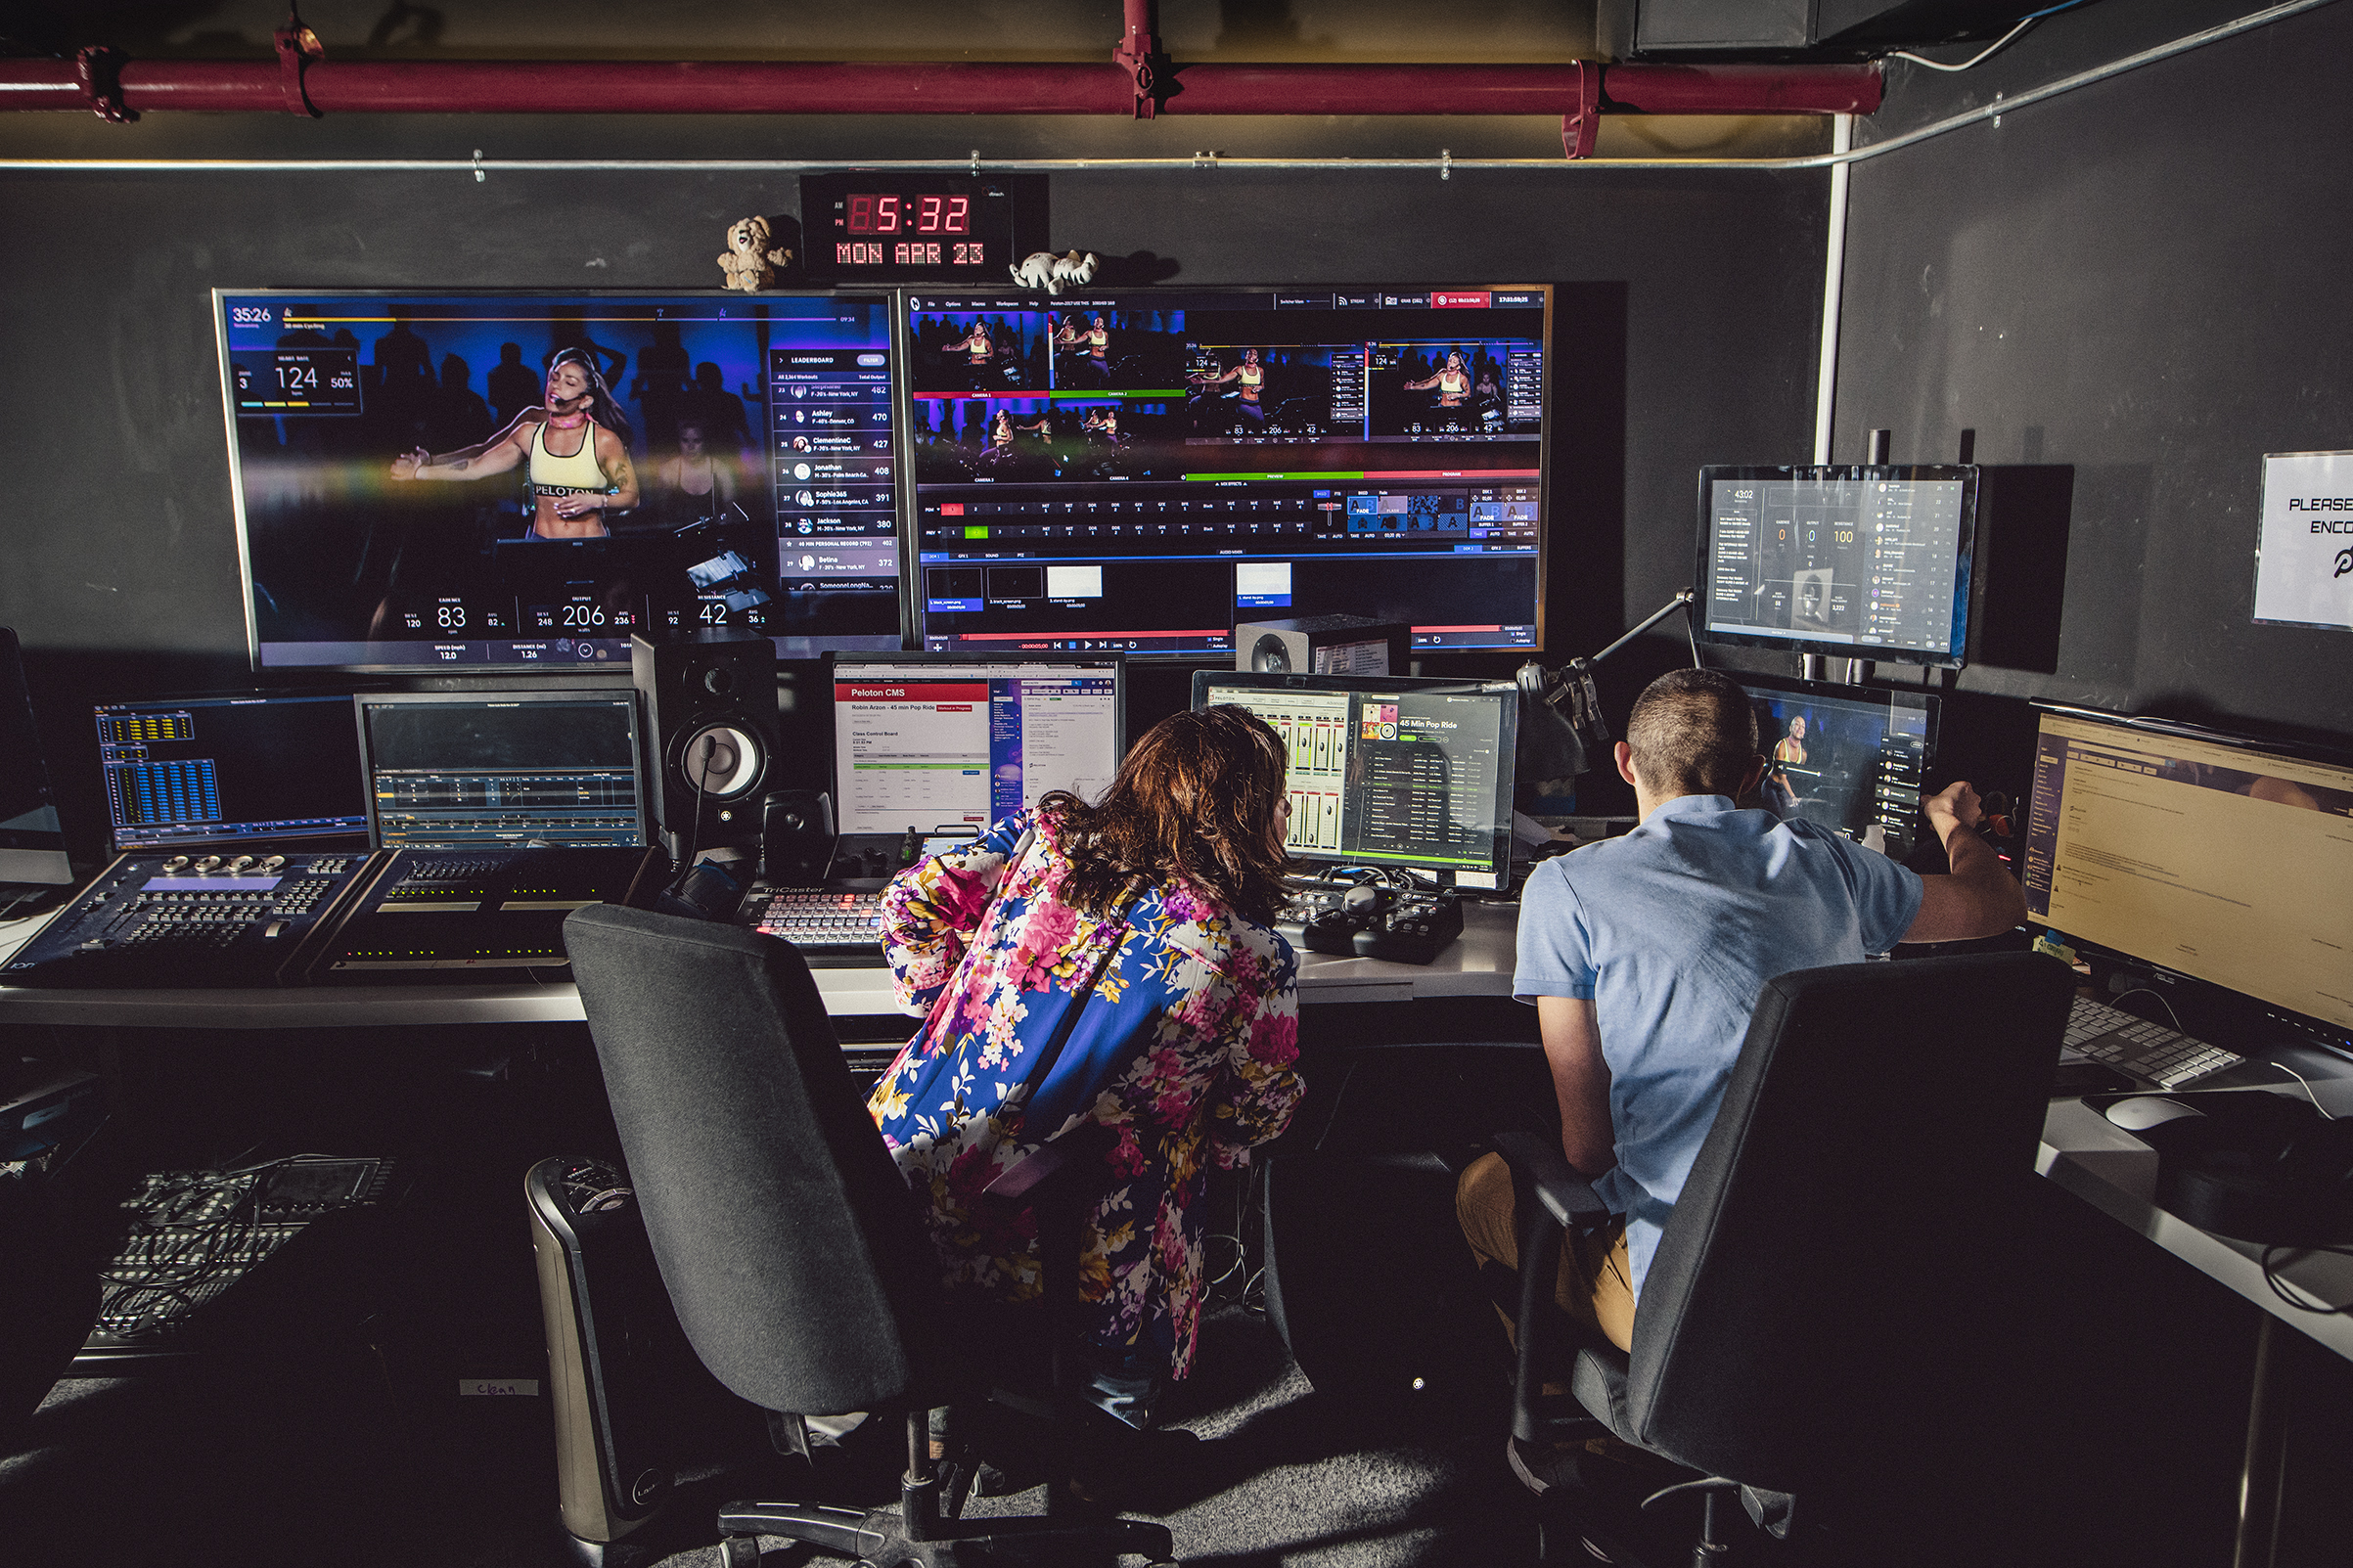 Peloton's production technicians Samantha Pirrello, left, and Joe Palagonia edit a live stream of Arzon's cycling class in New York City for riders at home